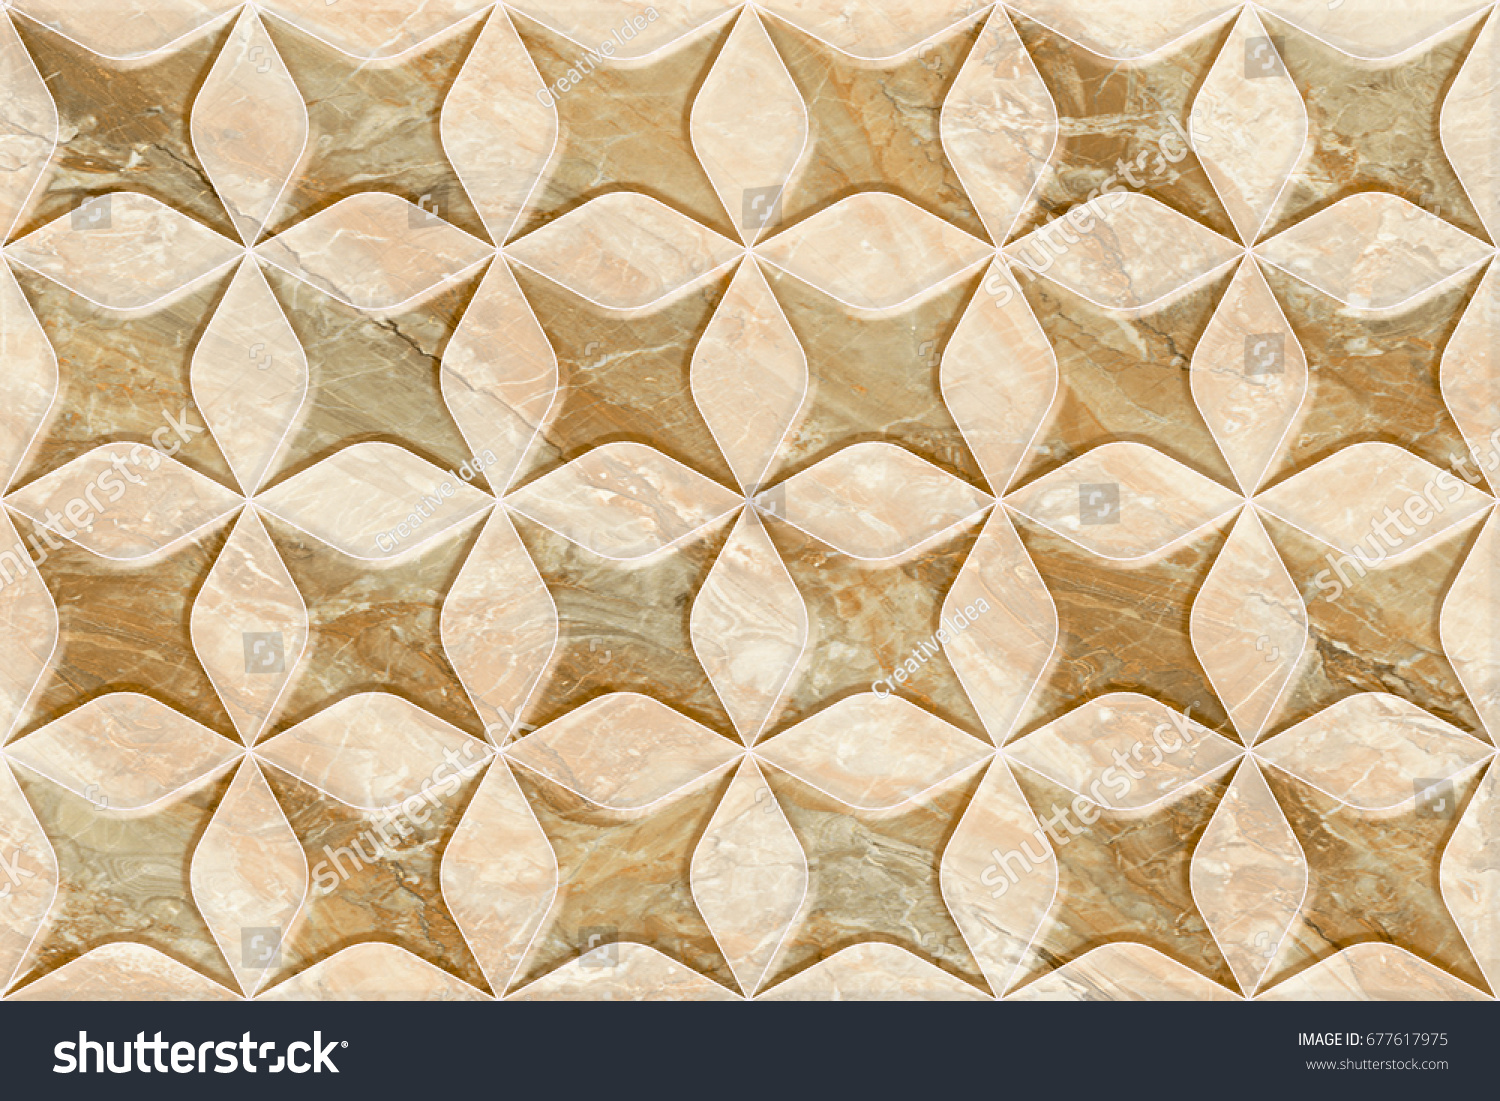 Abstract Ceramic Tile Patterns Background | EZ Canvas